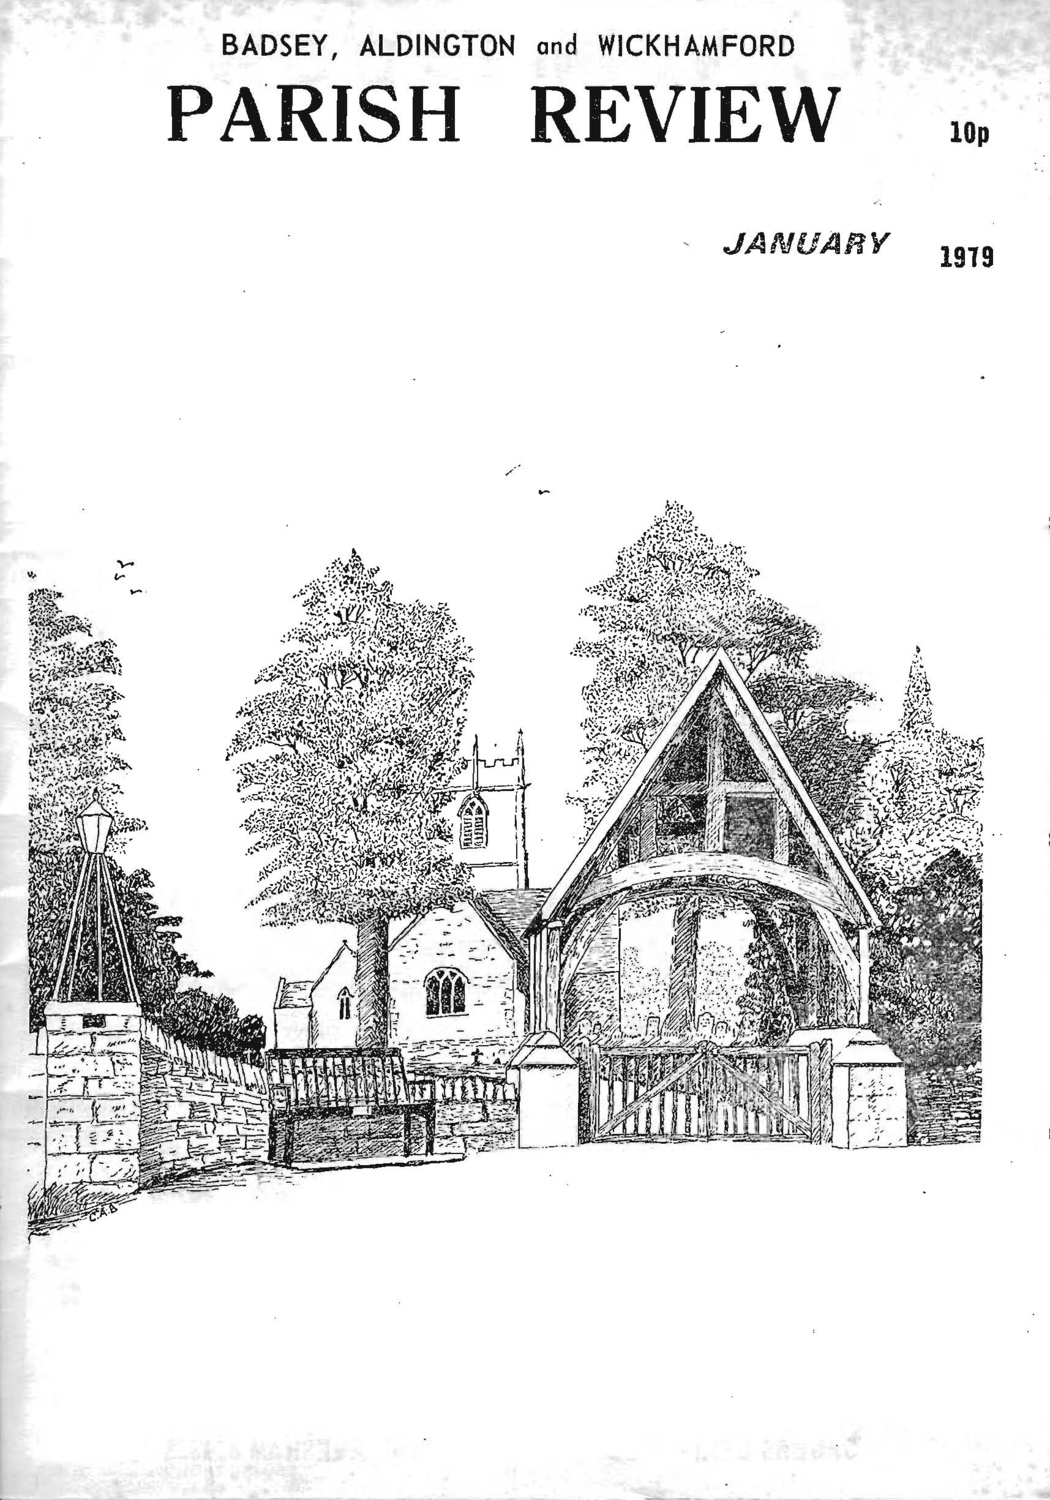 Badsey, Aldington and Wickhamford Parish Review, January 1979